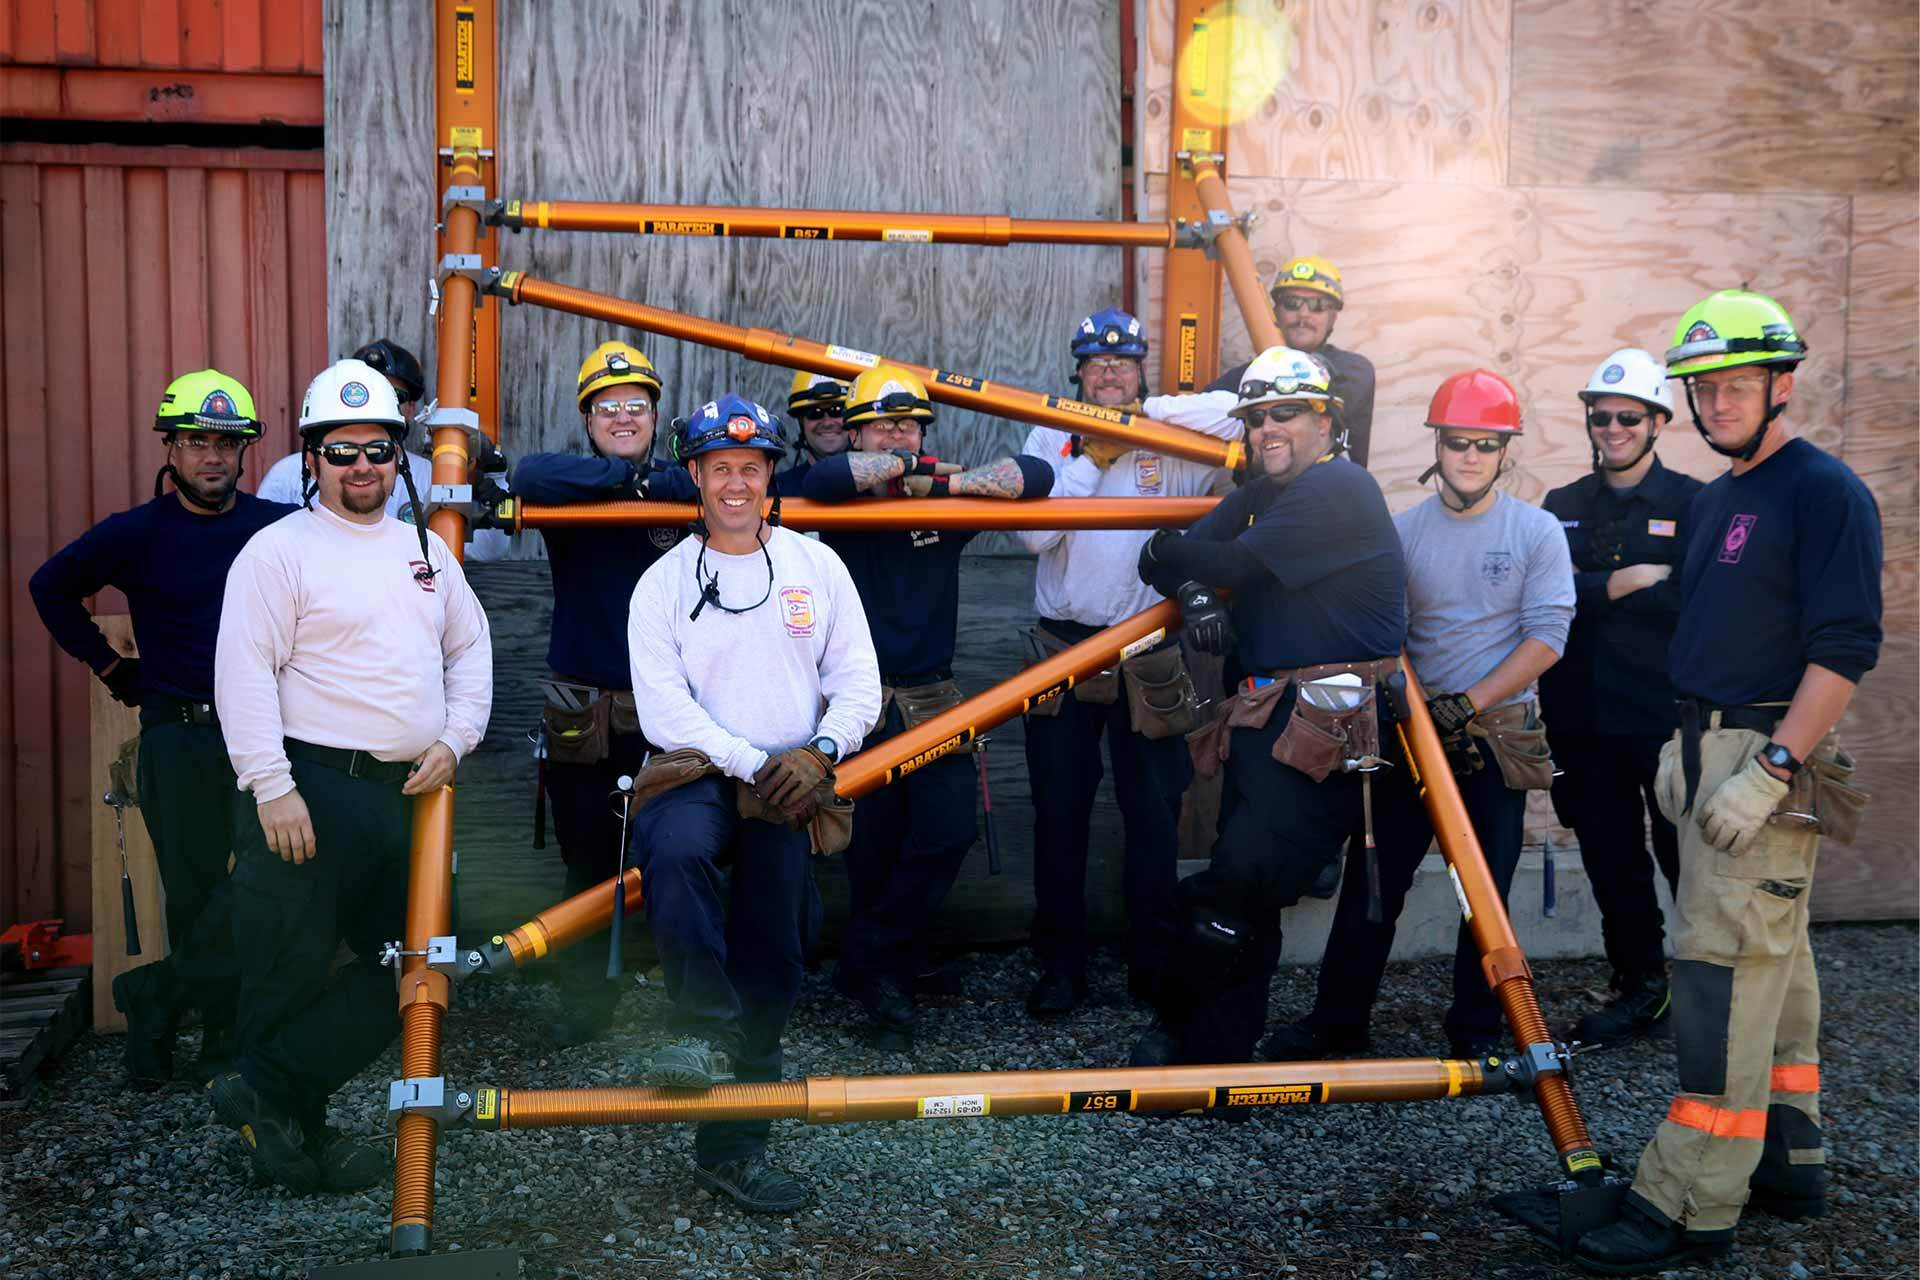 construction workers pose in front of project